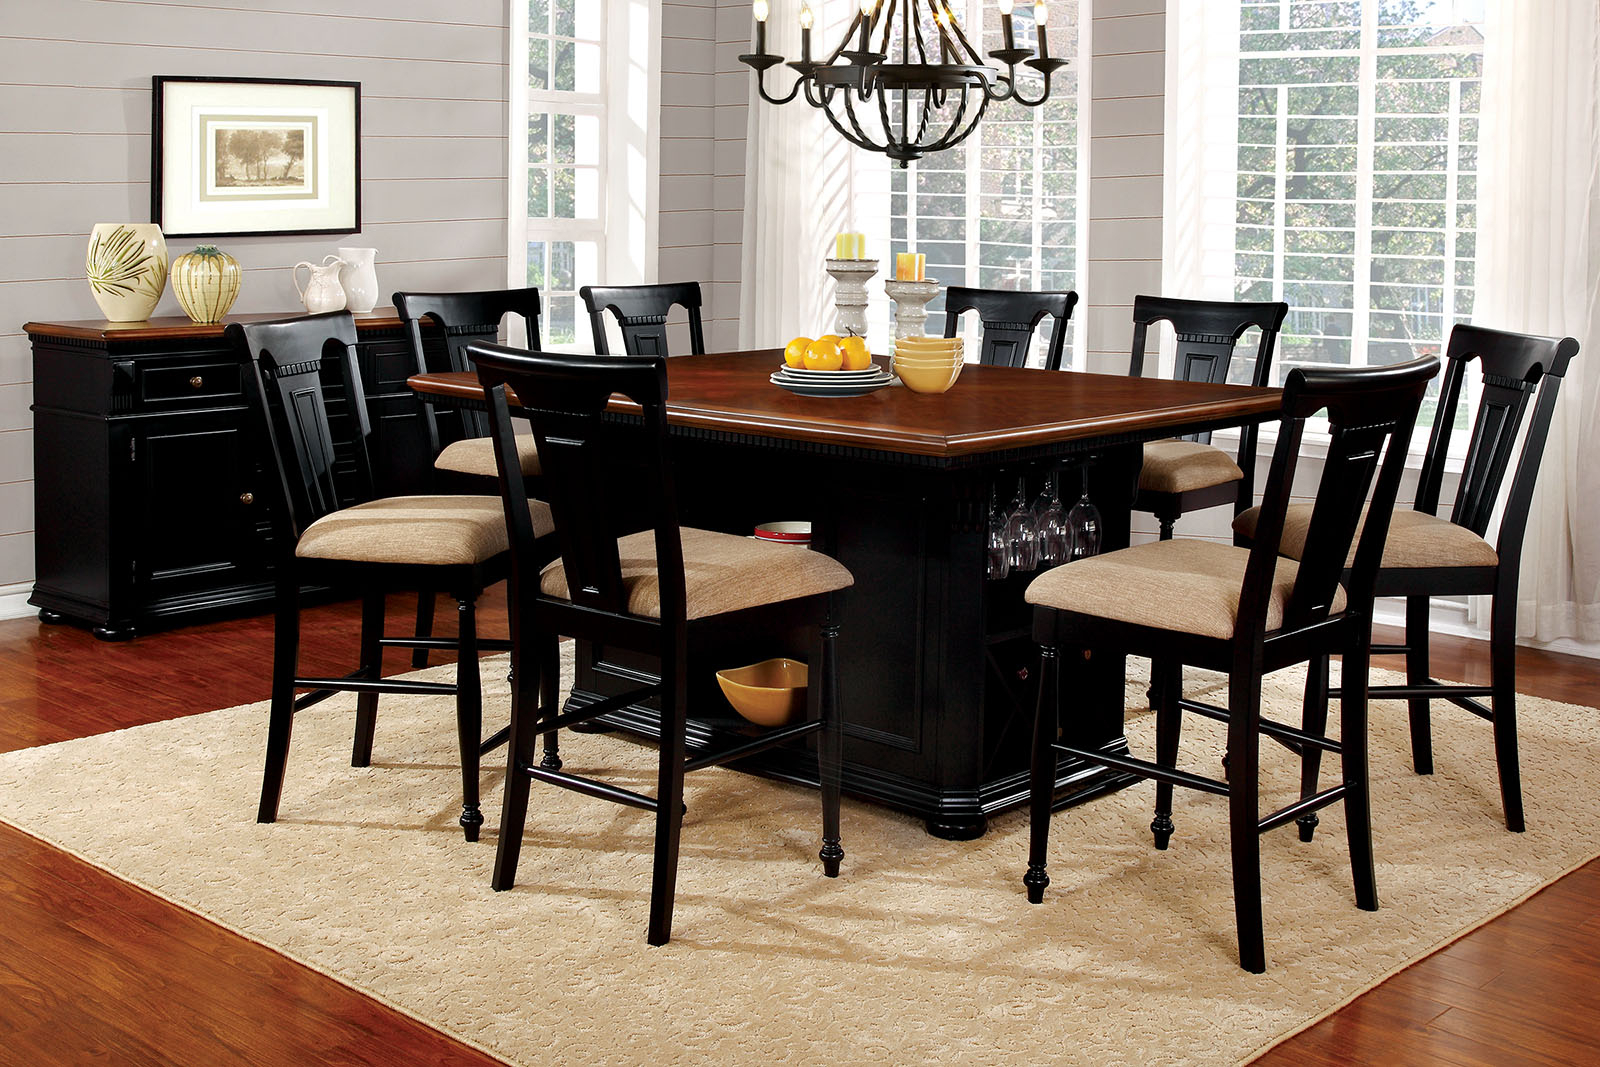 Most Recent Transitional 6 Seating Casual Dining Tables For Counter Height Dining Table And Chairs Aspiration 9Pcs (View 25 of 25)